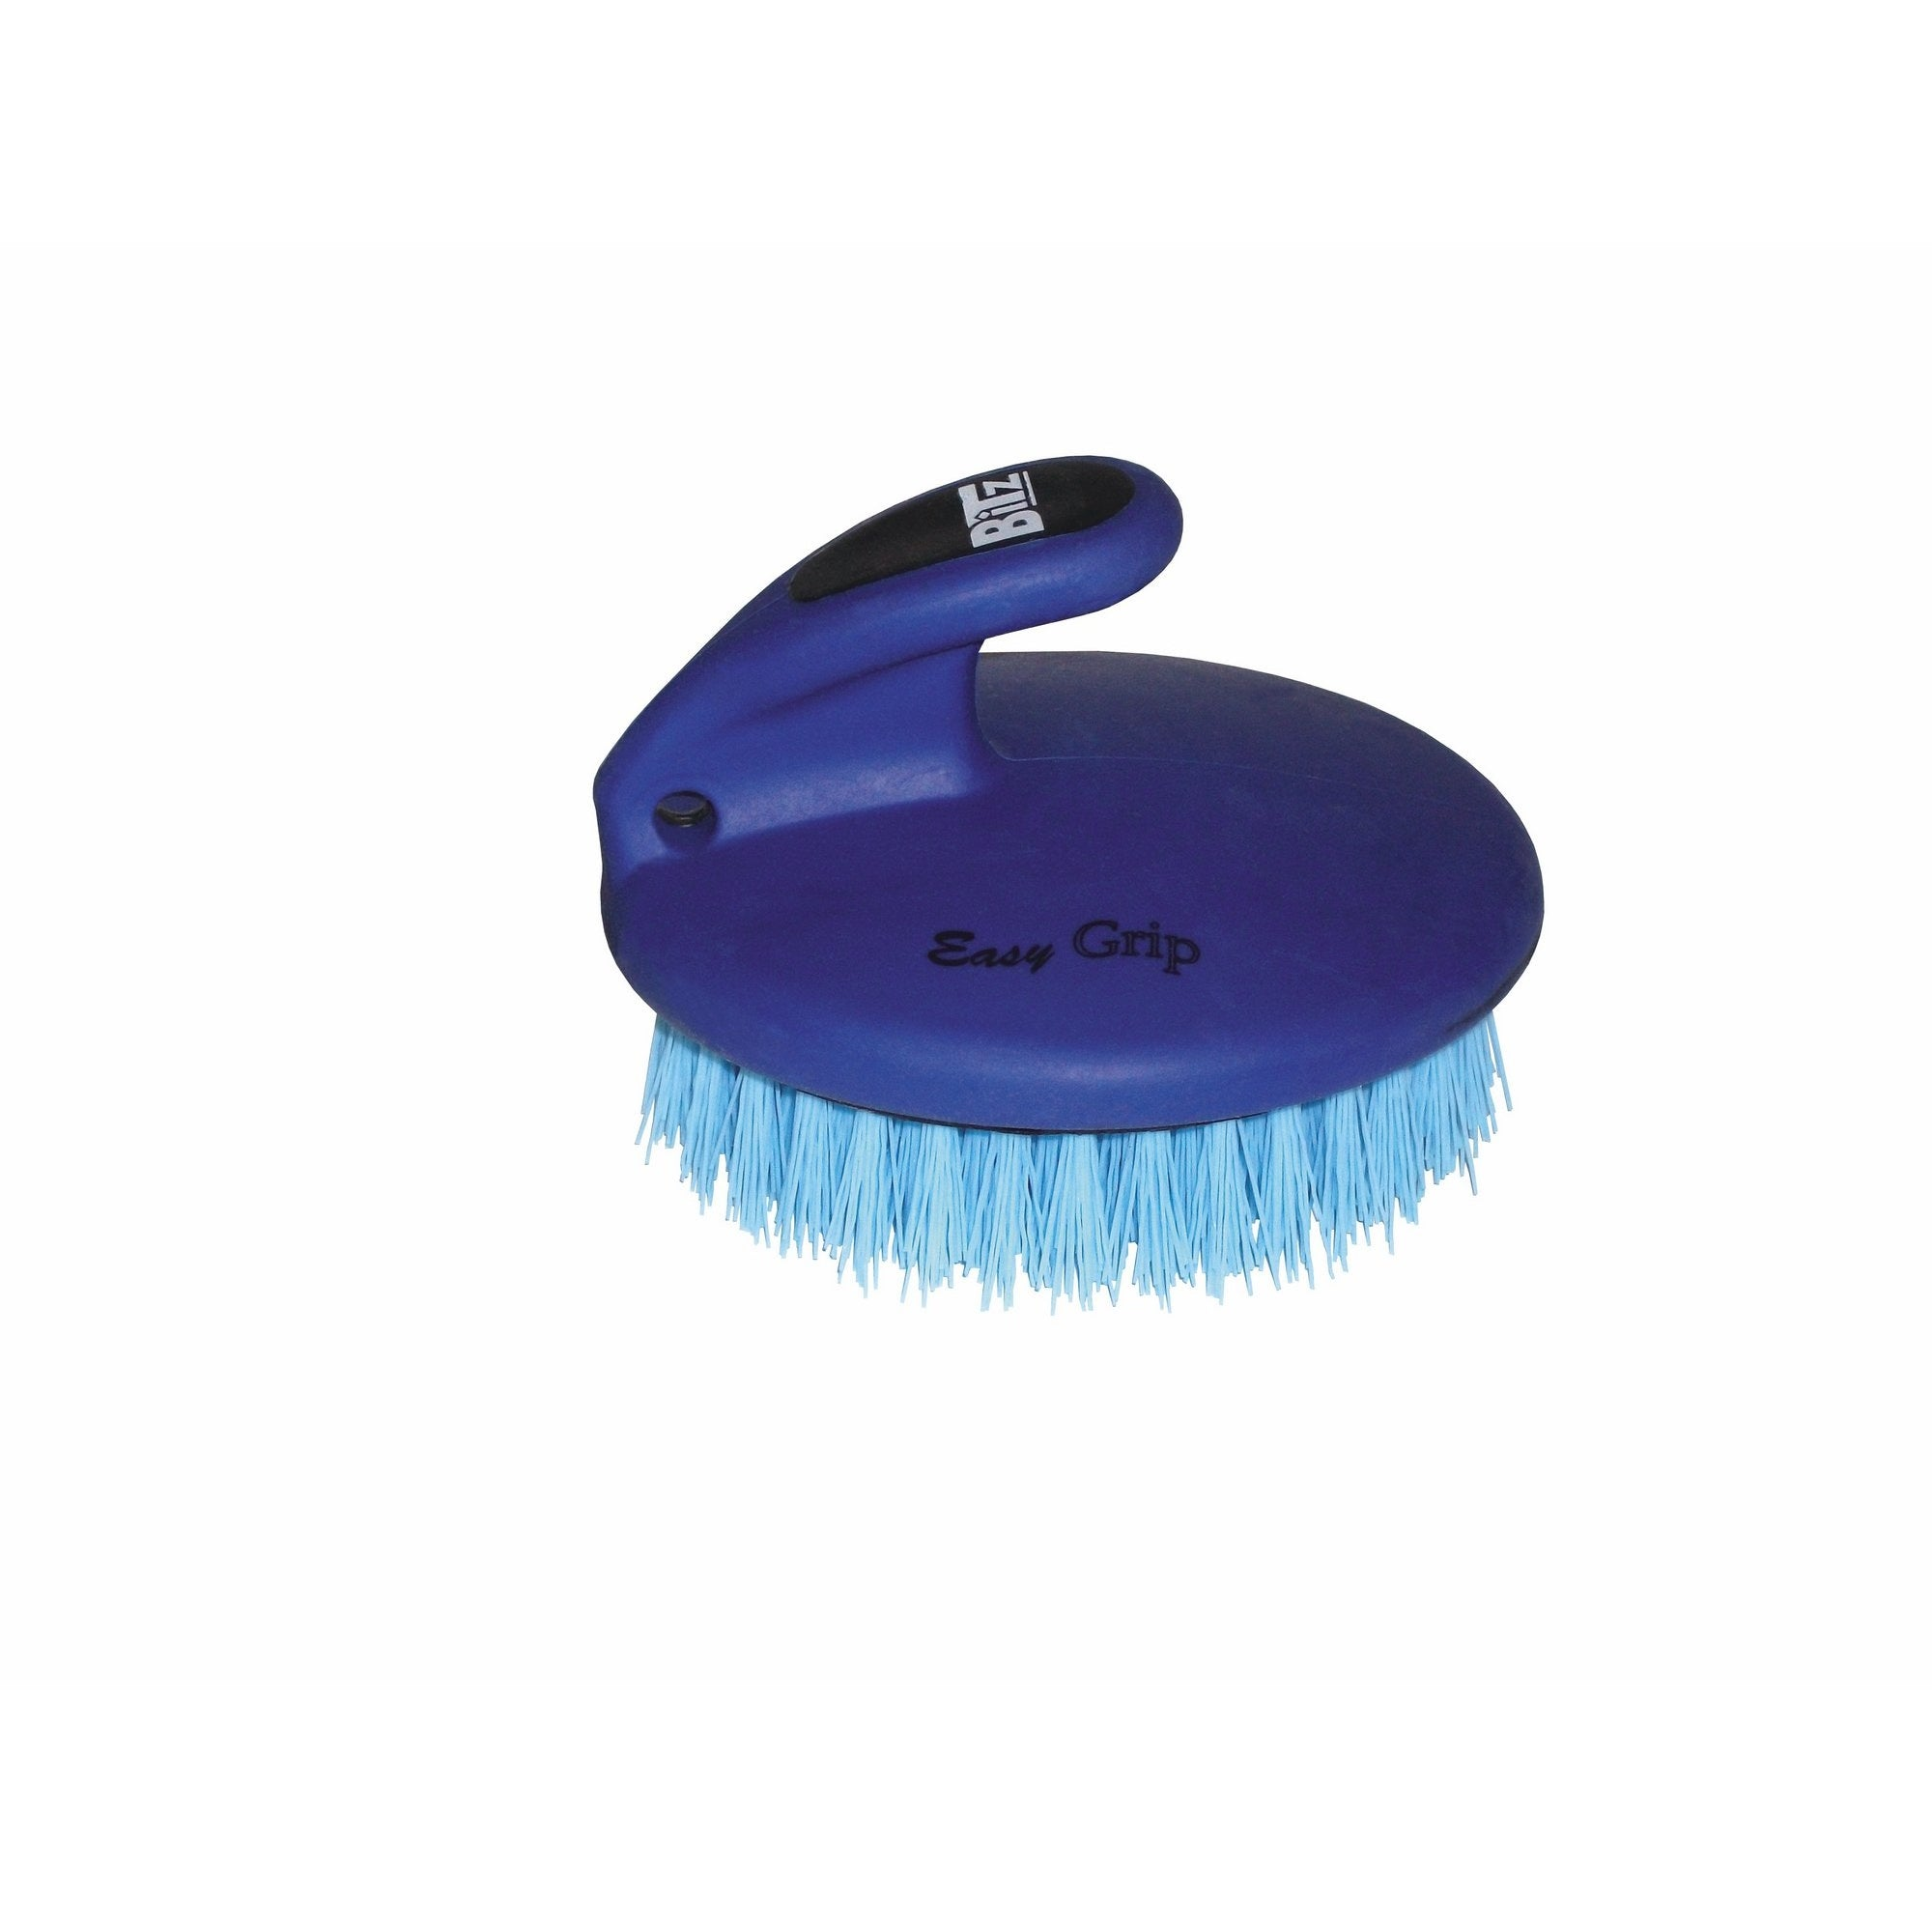 Bitz Palm-Held Dandy Brush Short Bristles